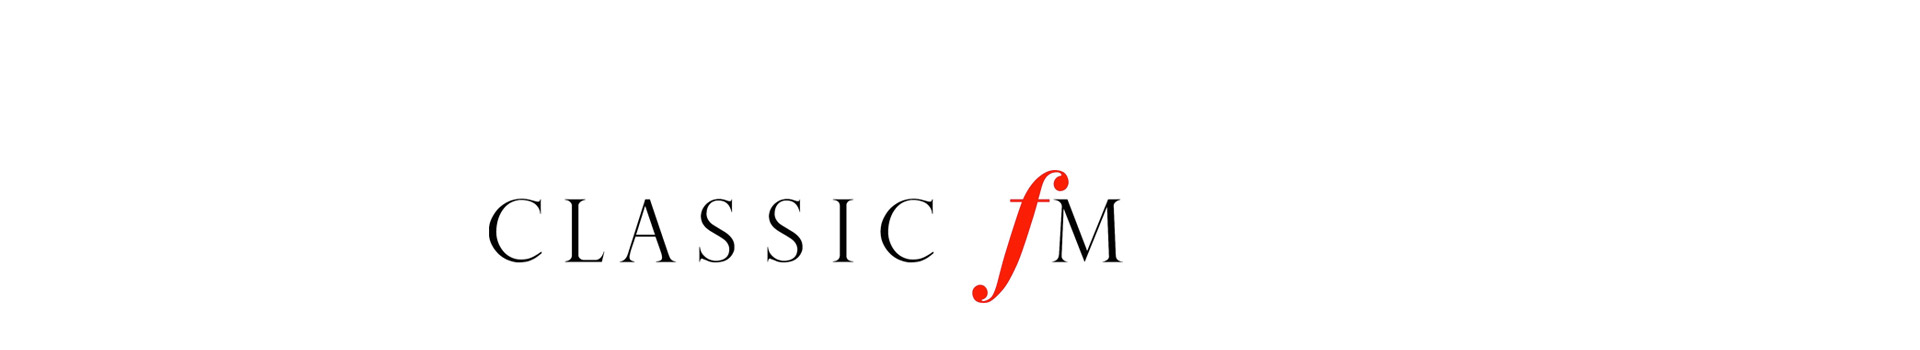 Classic FM Live tickets at the Royal Albert Hall